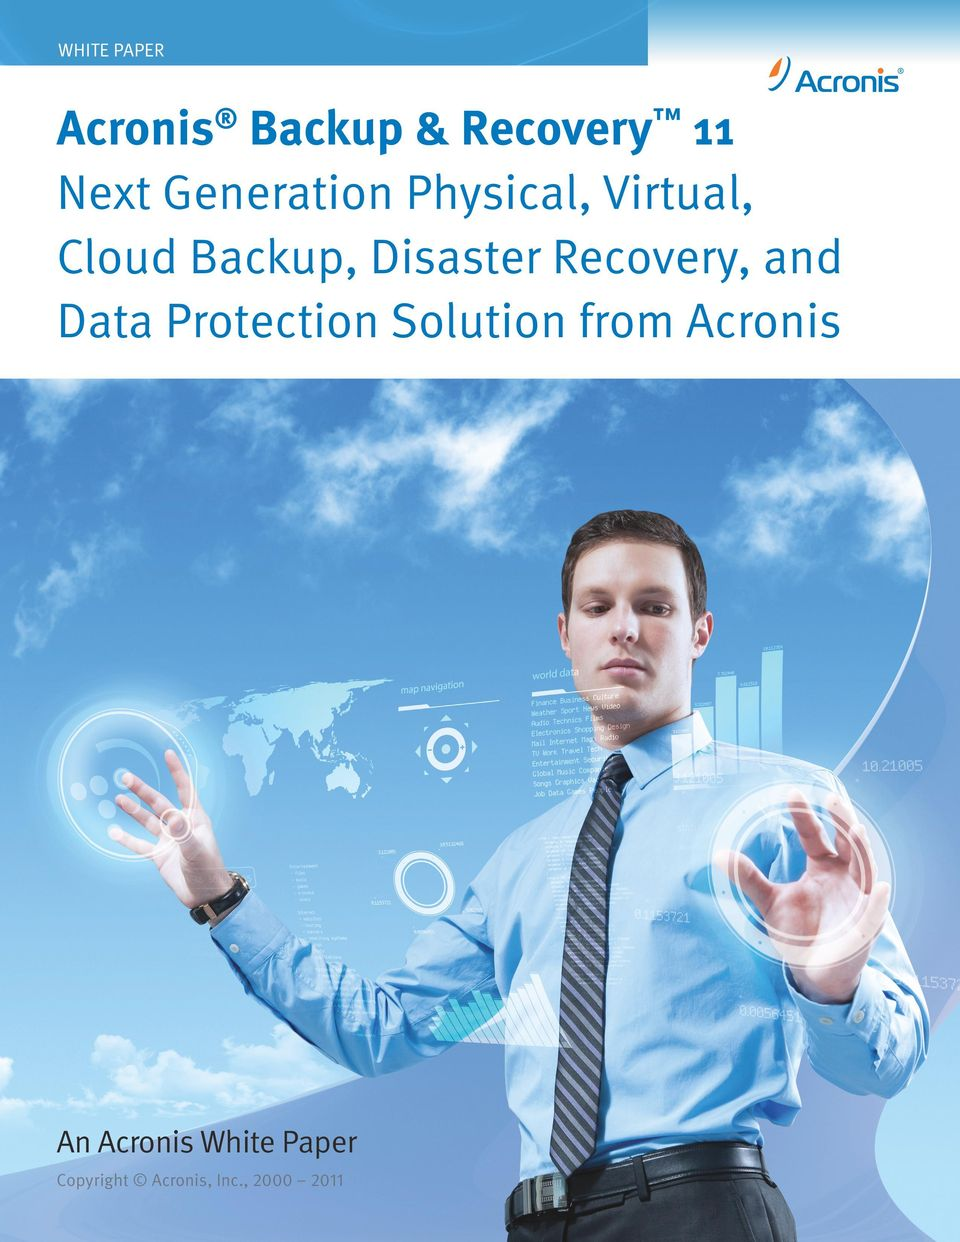 Recovery, and Data Protection Solution from